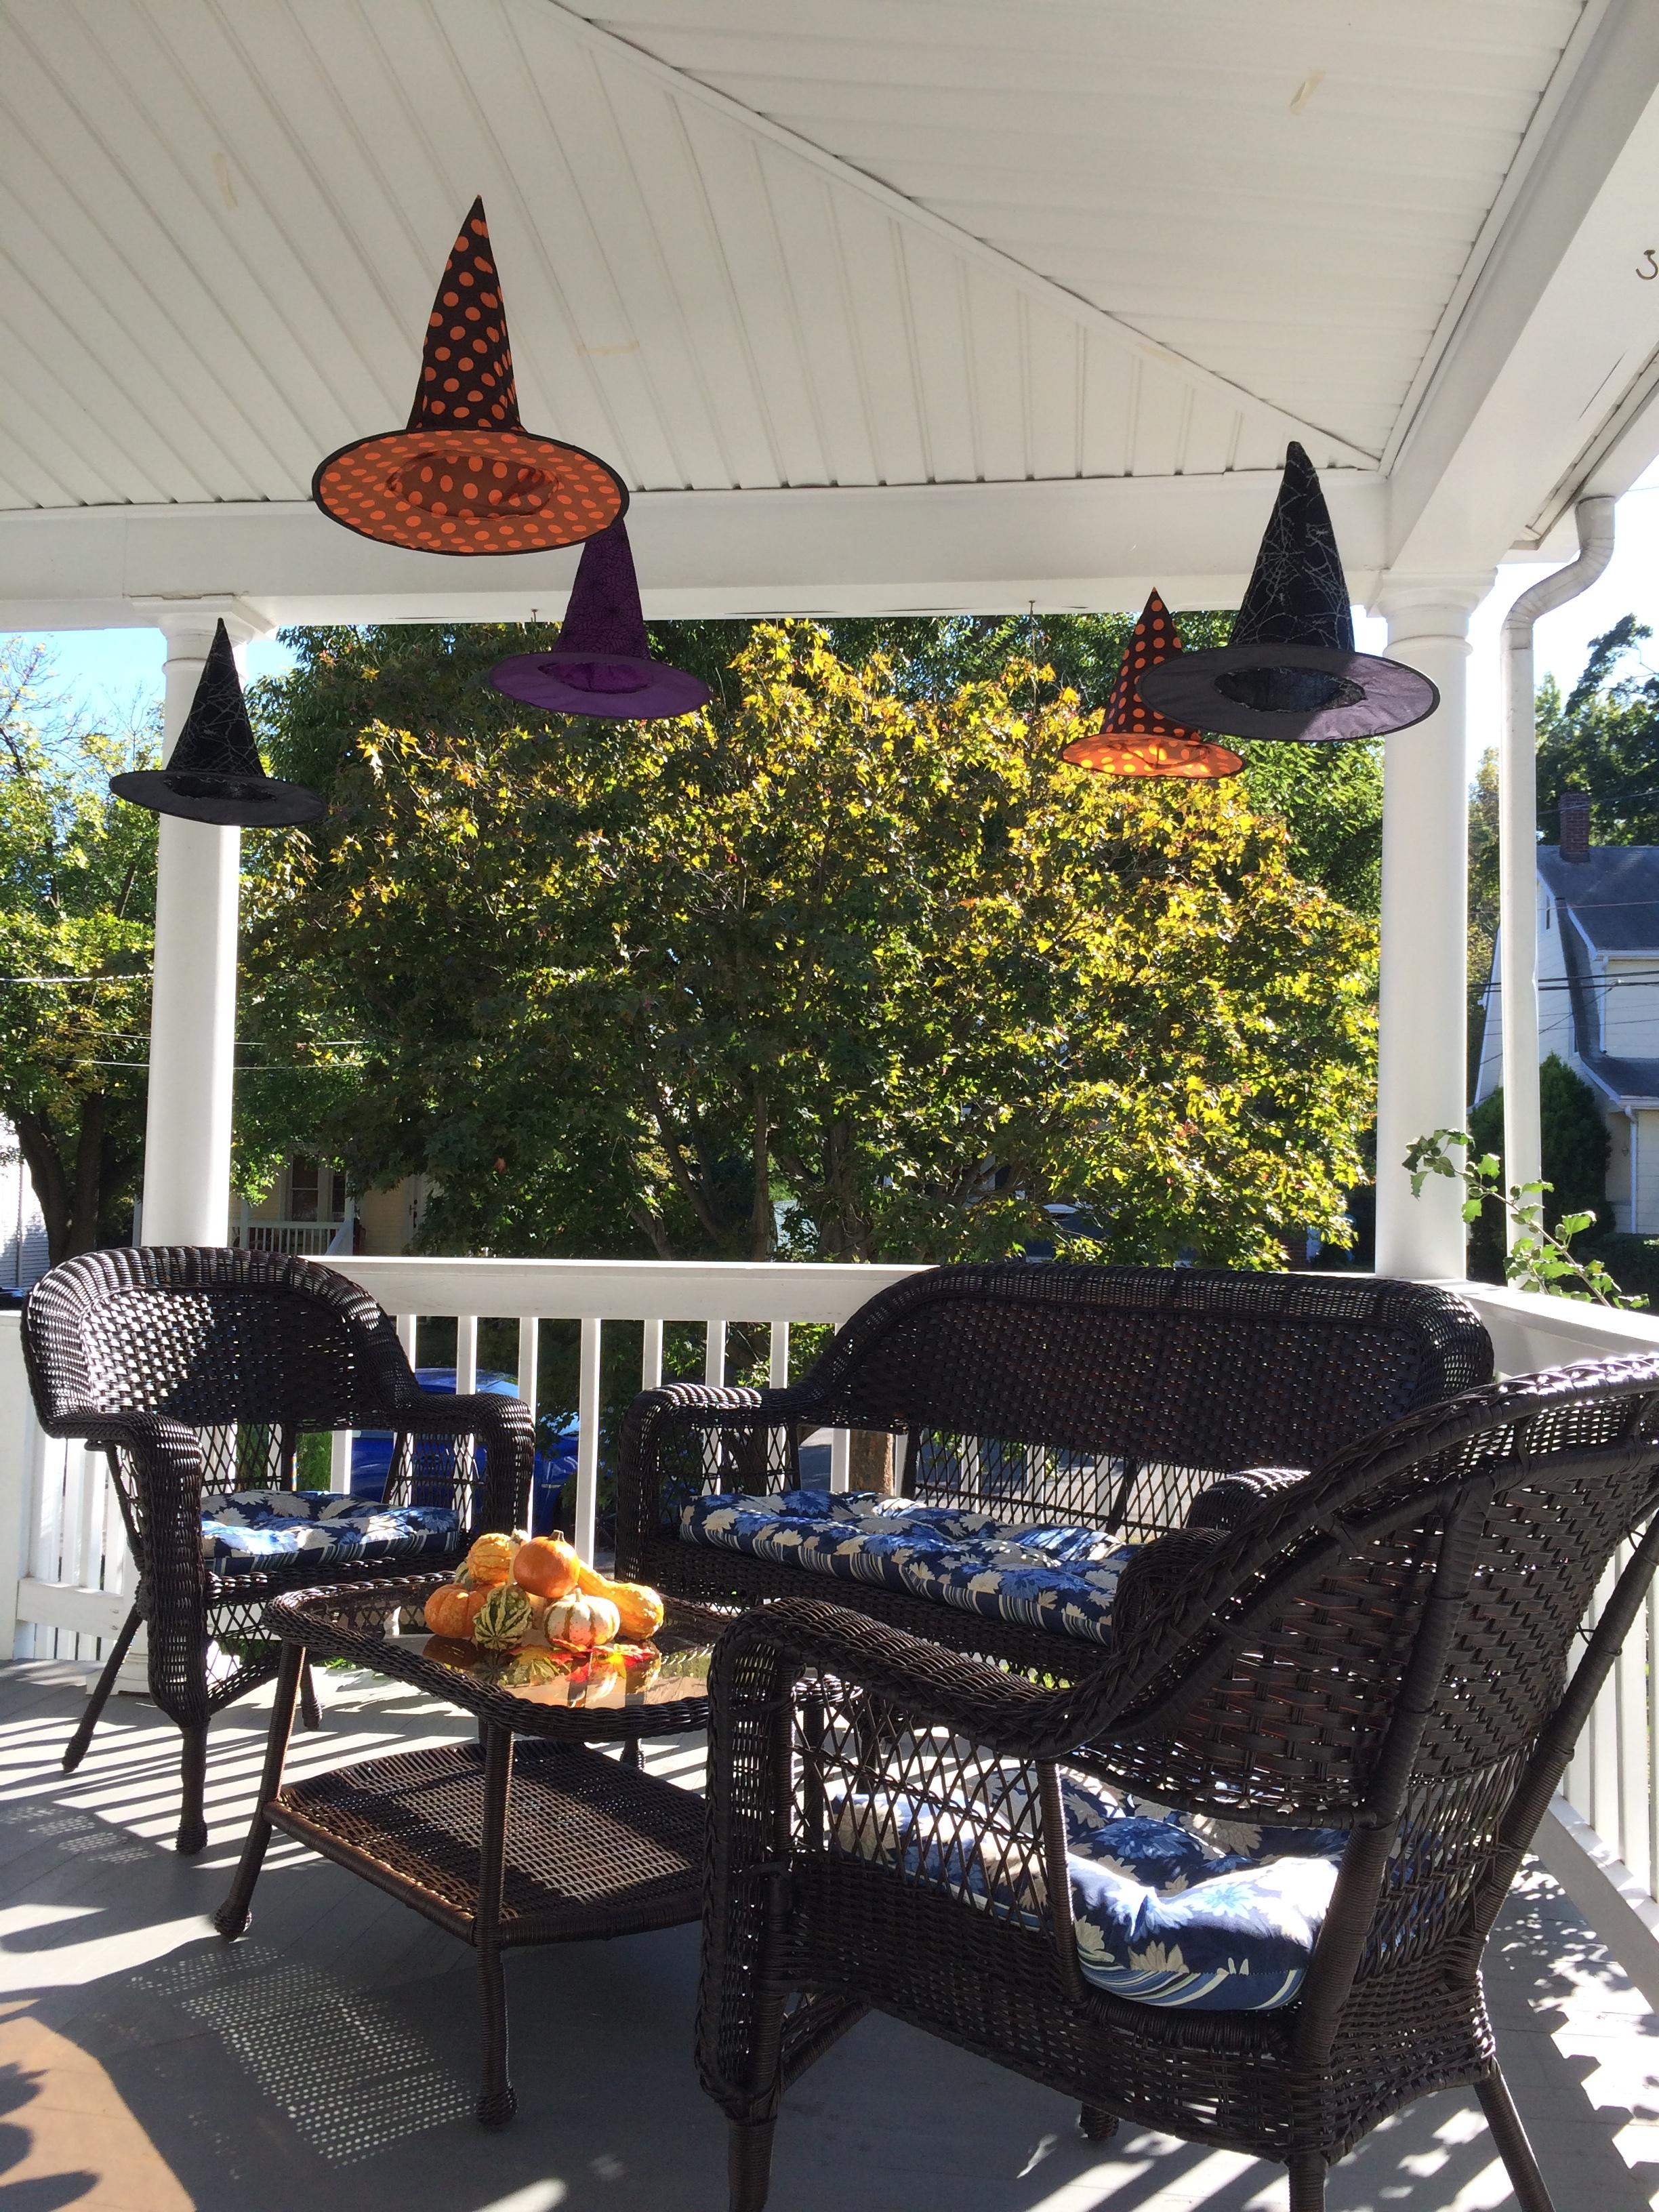 Maybe I'll attract some friendly witches to my porch seating area! The different color and pattern hats are so fun.